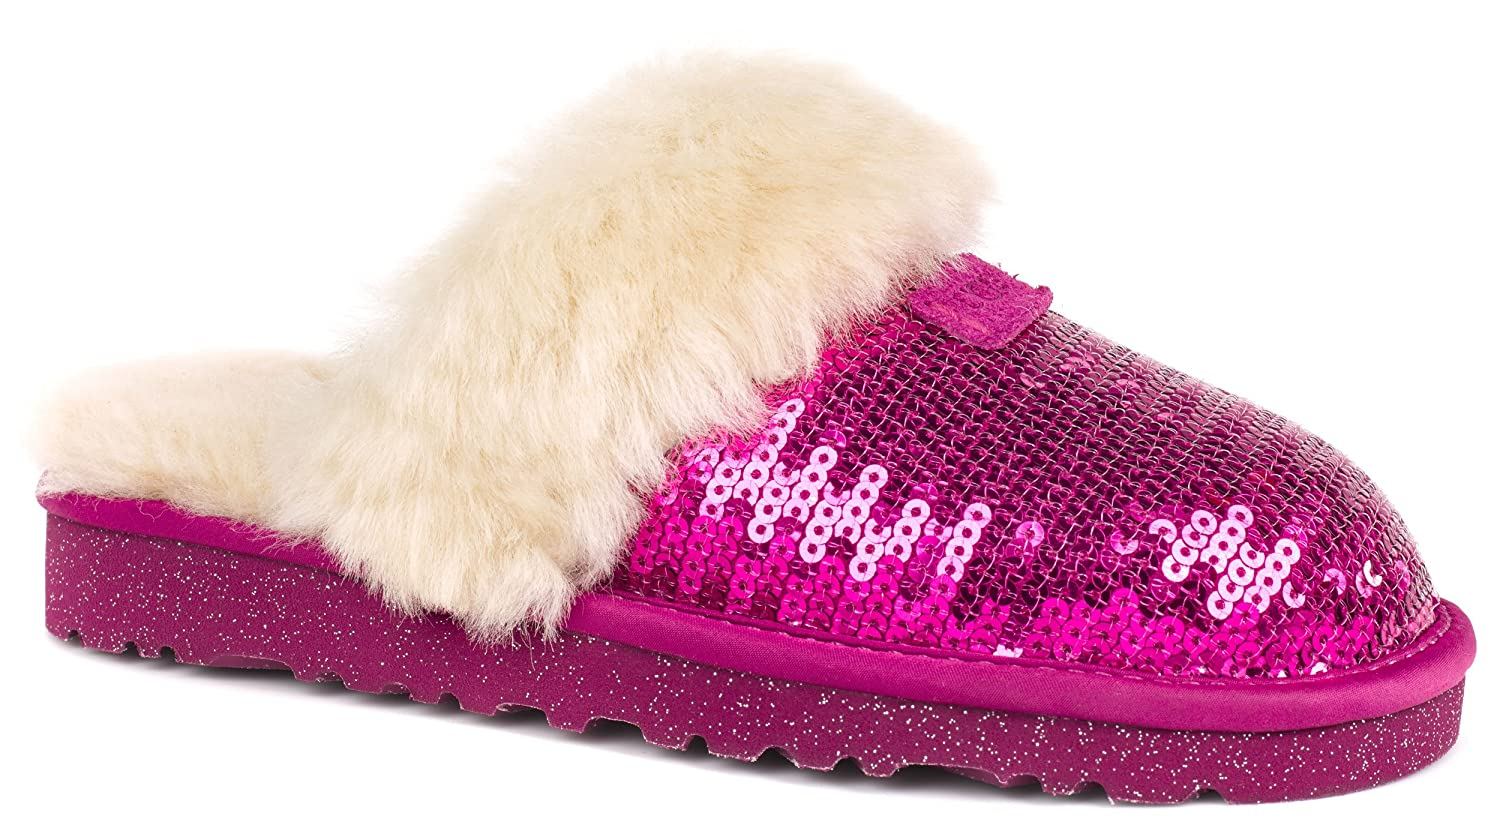 4023a08d25b UGG Women's Slippers Pink: Amazon.co.uk: Shoes & Bags